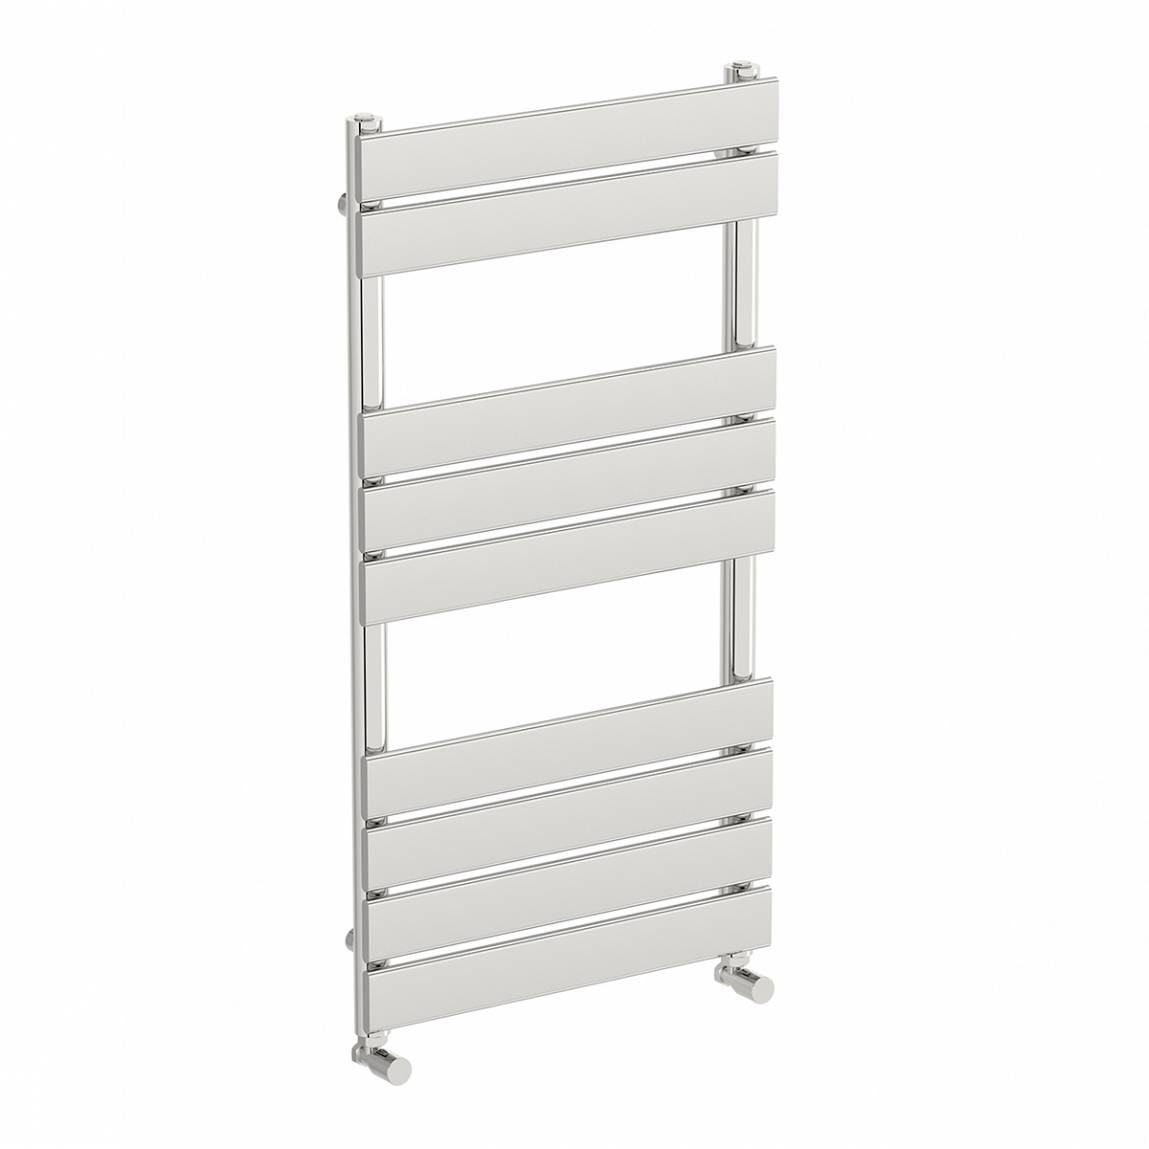 Image of Signelle Radiator 950 x 500